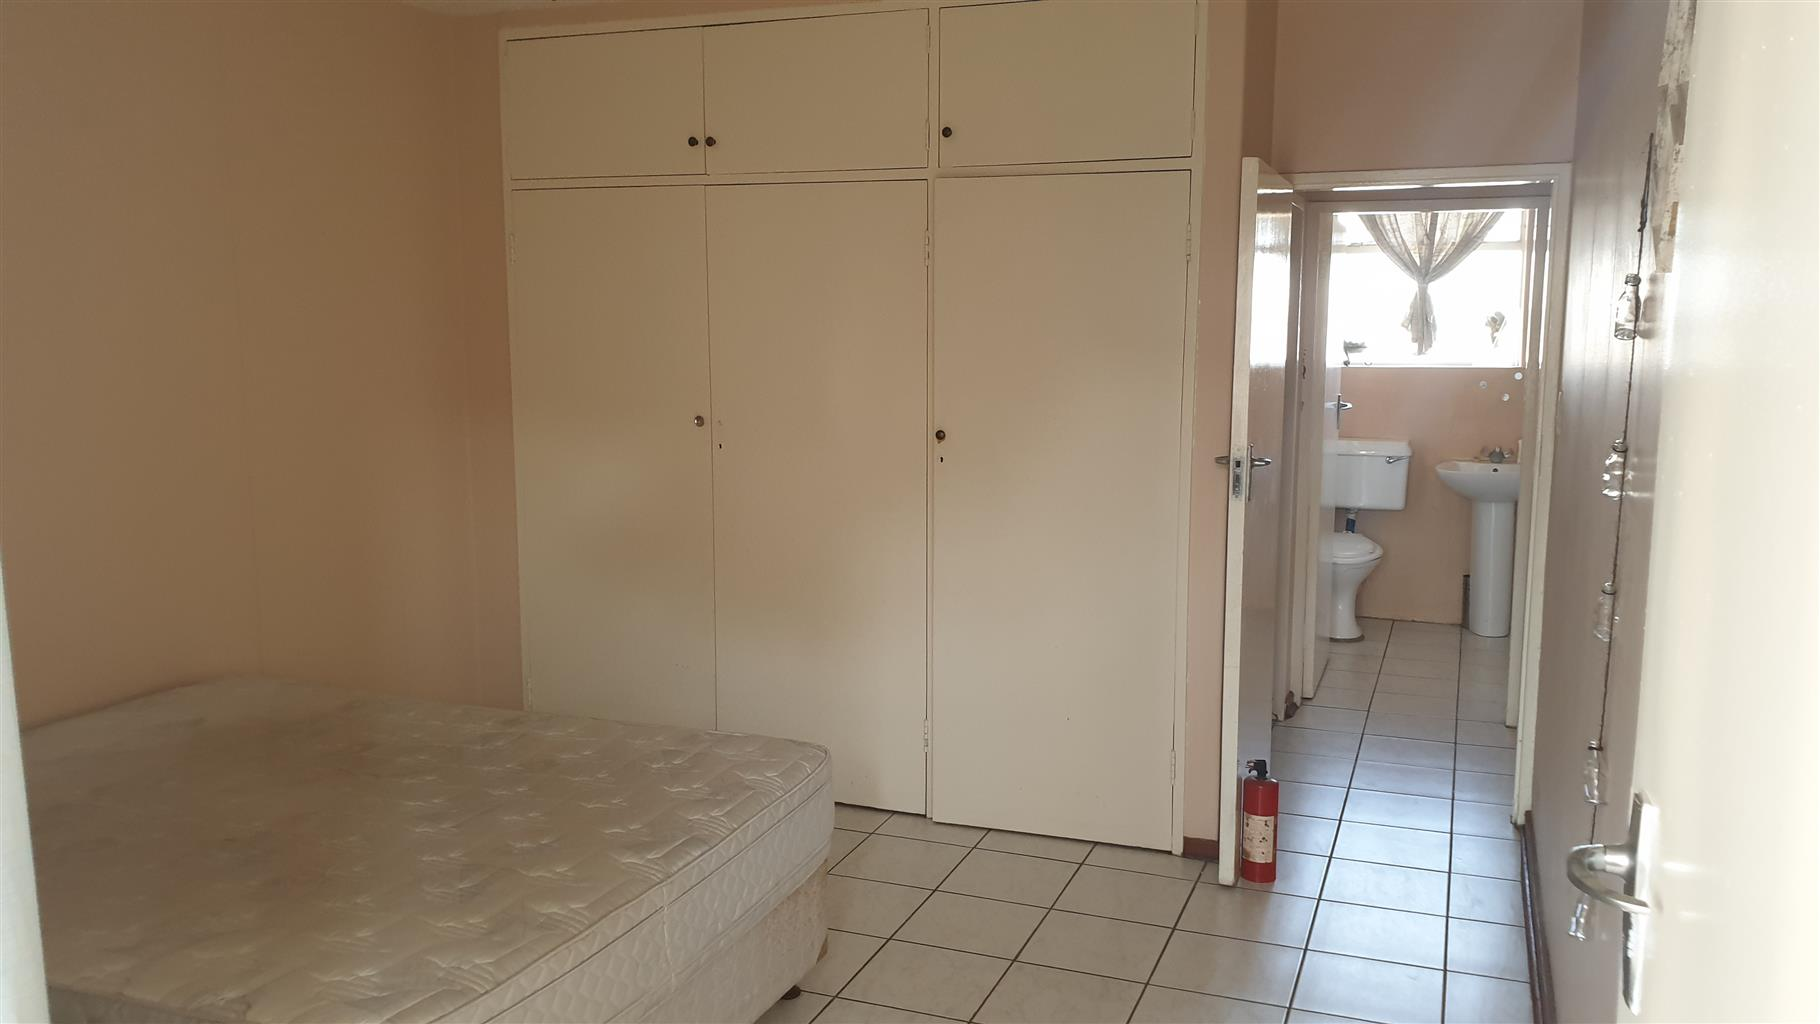 1.5 Apartment for Rent in Wonderboom South